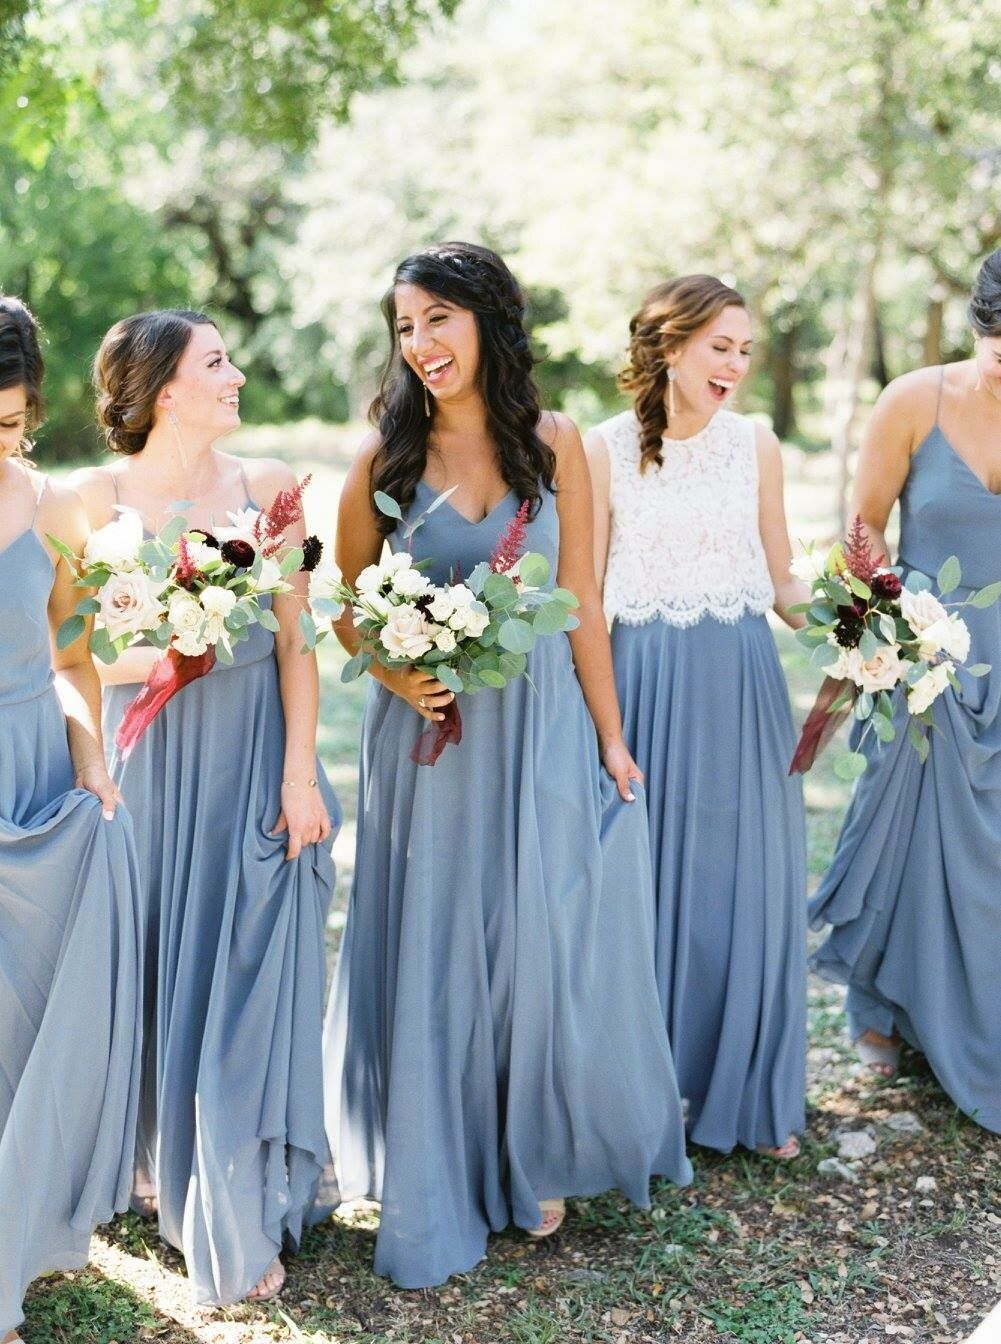 Jenny Yoo Bridesmaids Long Luxe Chiffon Inesse Dress In Denmark Blue Perfecf Shade For A Boho Chic Wedding Photo By Brittany Jean Photography